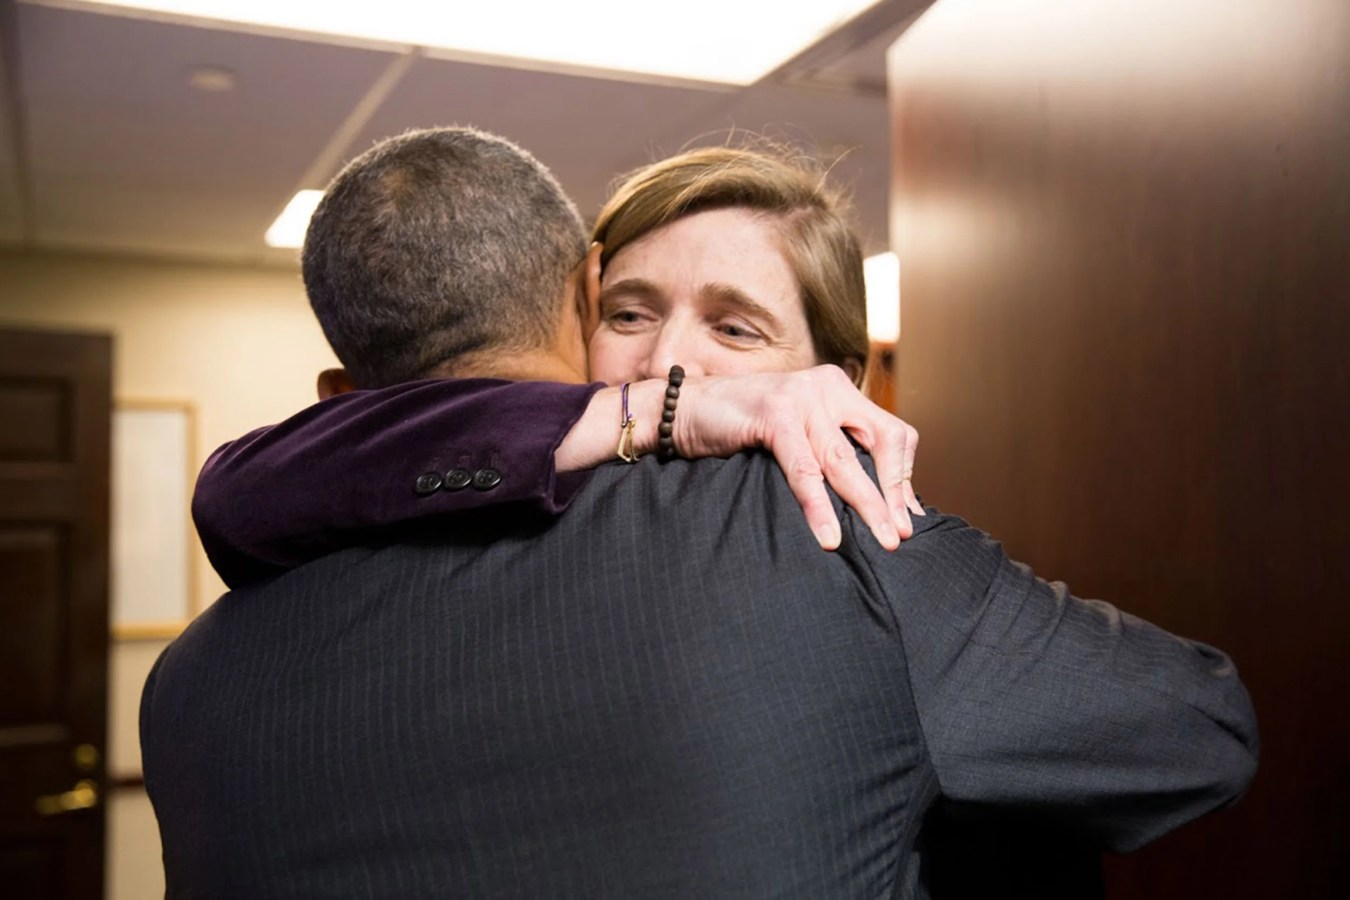 President Obama hugs Ambassador Power farewell in the Situation Room of the White House, Jan. 17, 2017.  Official White House Photo by Pete Souza